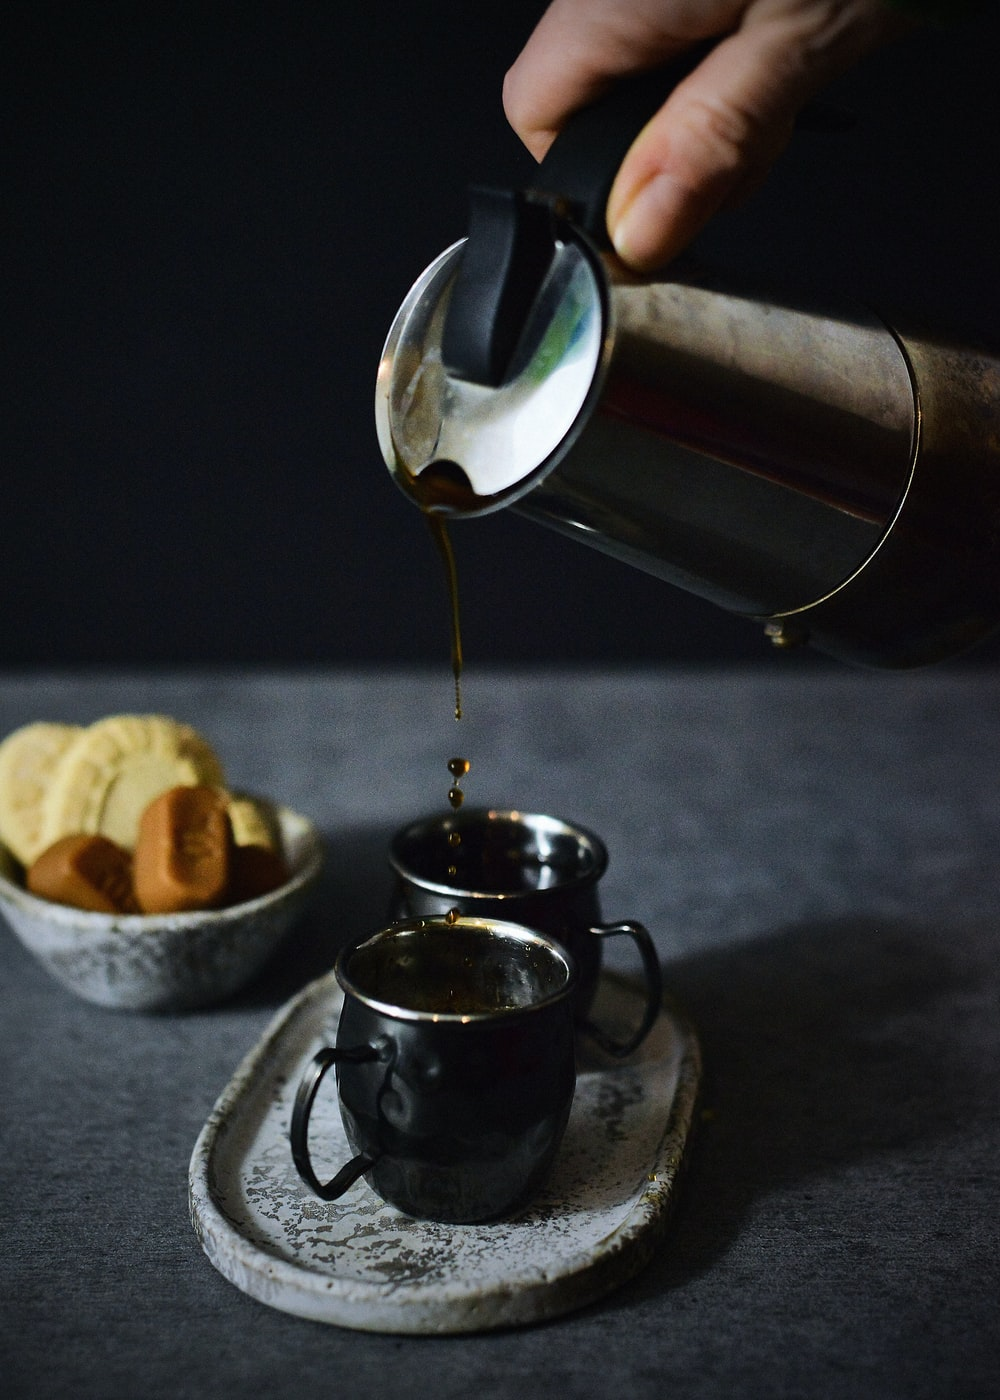 stainless steel cup on saucer